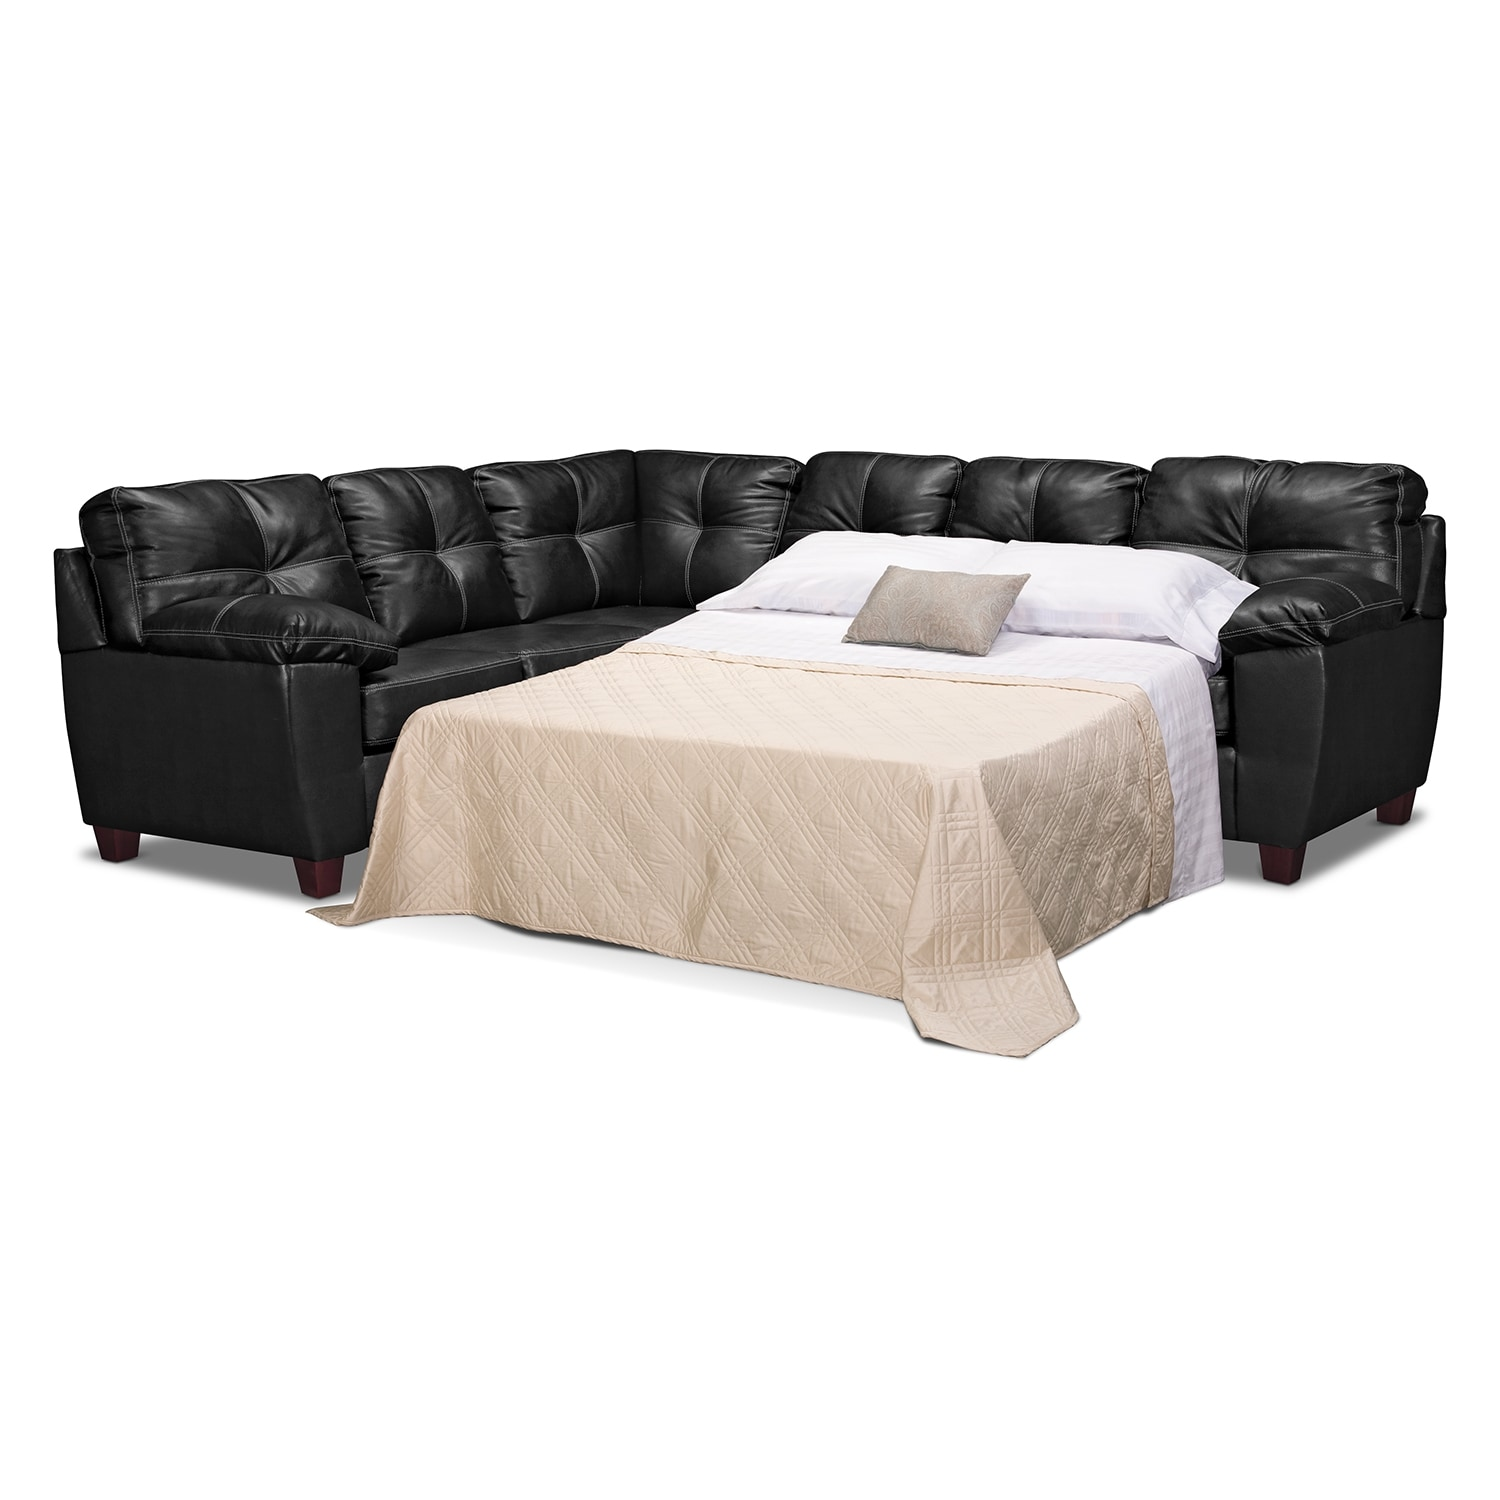 American Signature Furniture Rialto Leather 2 Pc